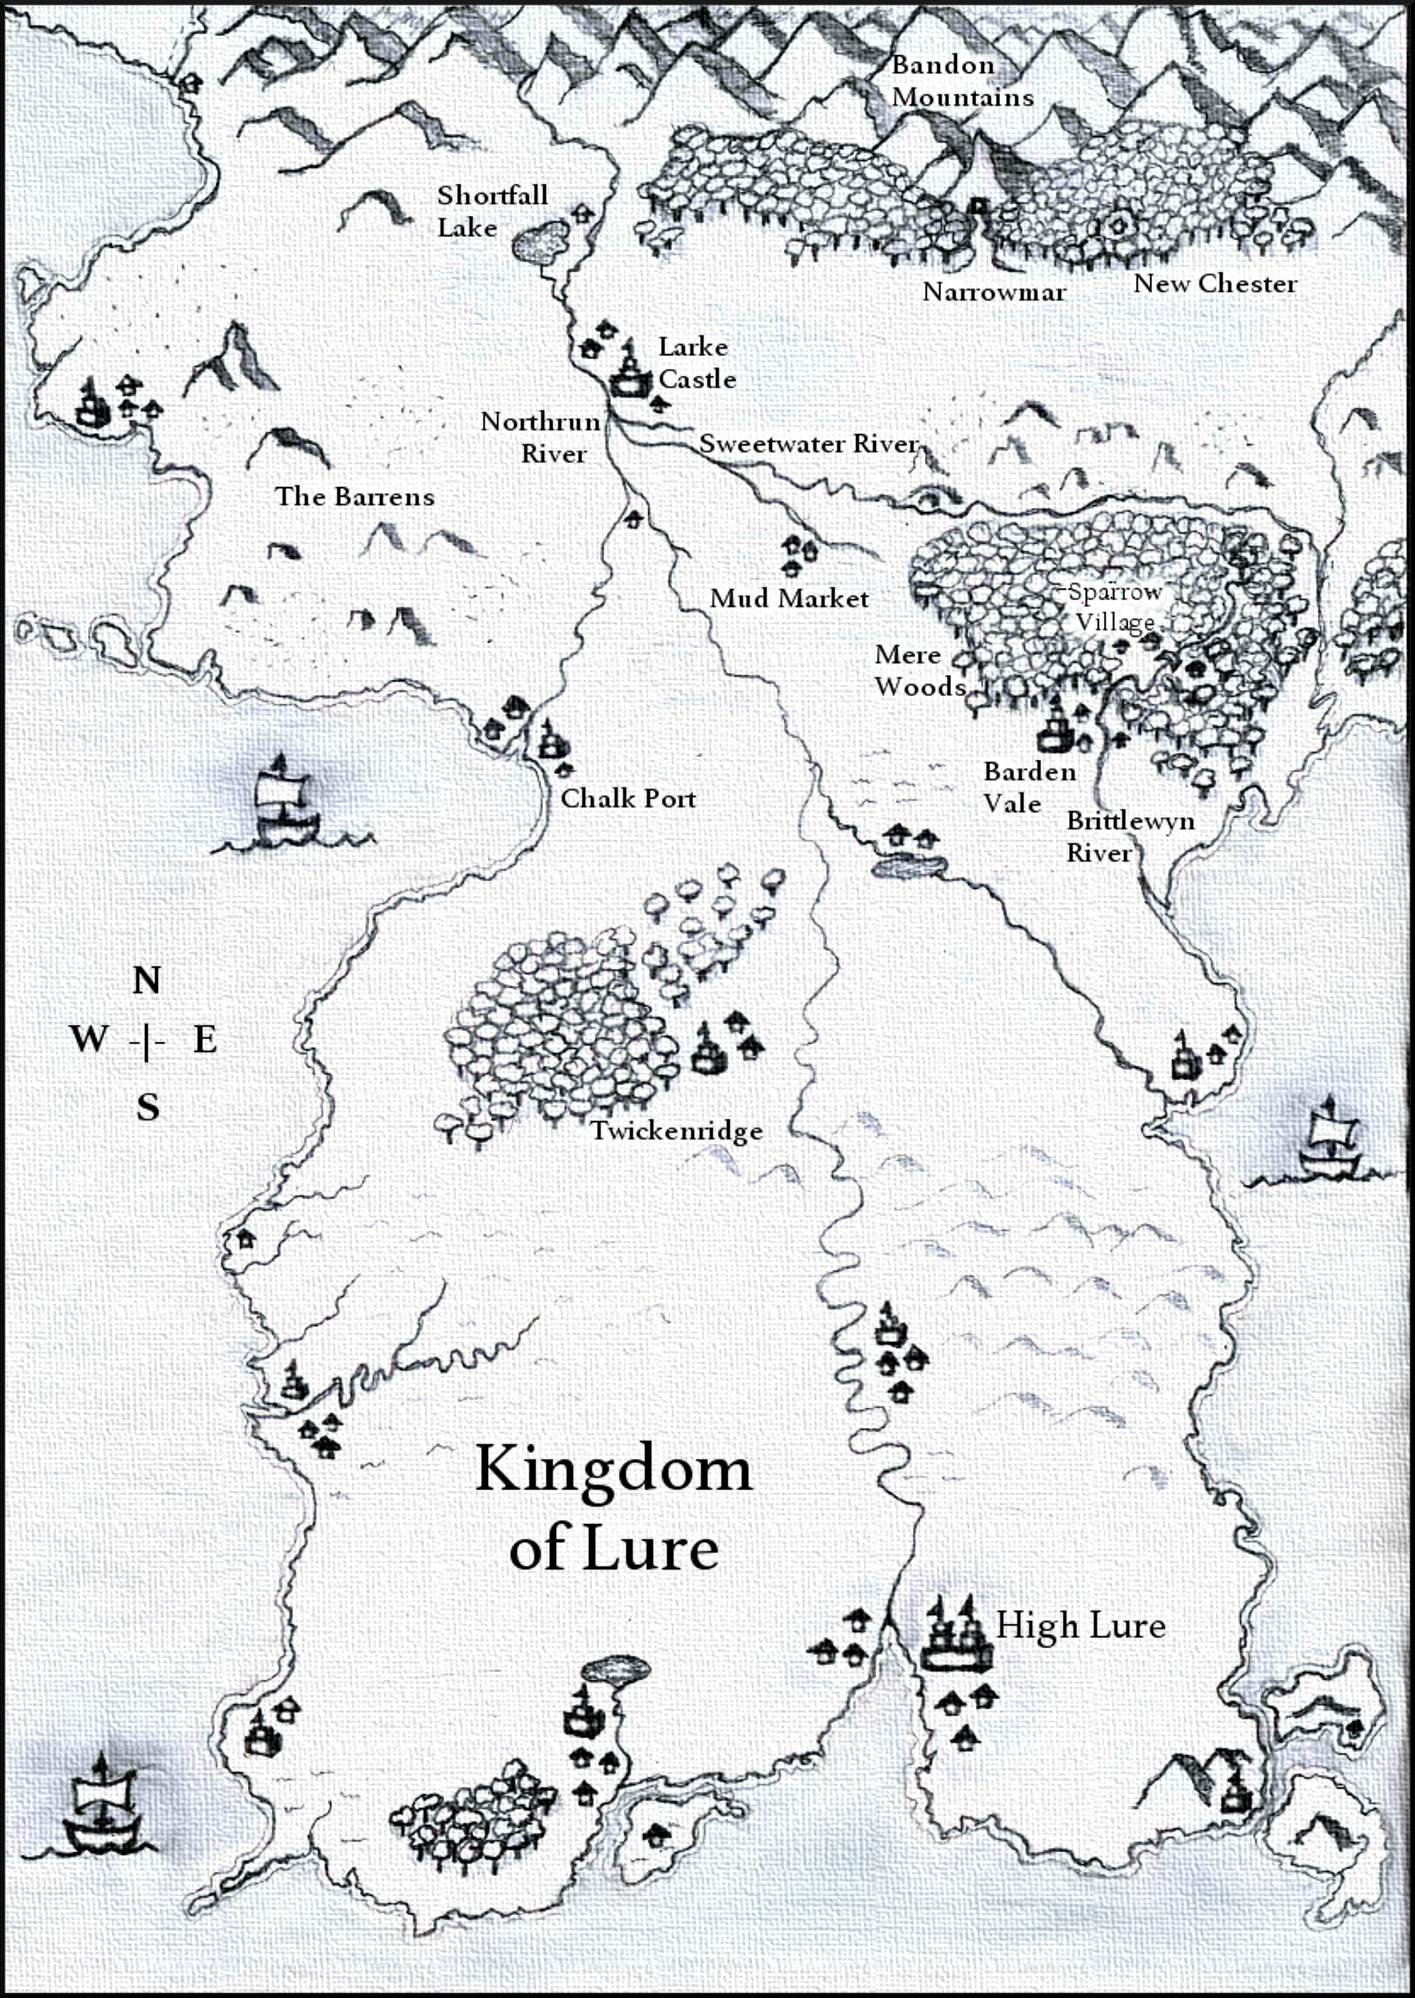 kingdom-of-lure-map